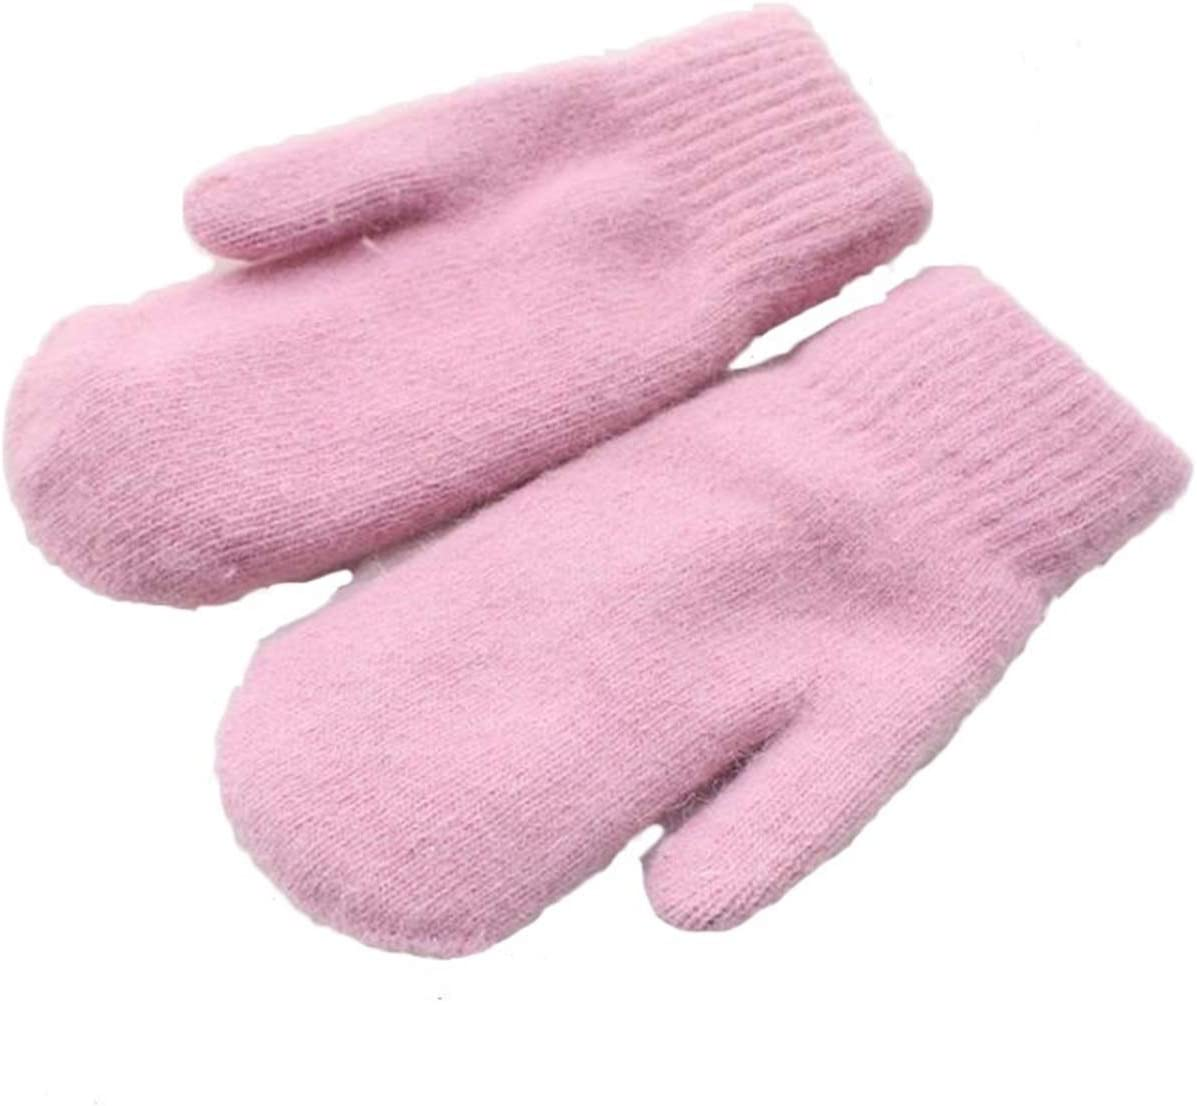 JBIVWW Women Winter Thick Knitted Double Layer Knit Warm Mittens Female Cute Full Fingers Gloves (Color : Light Gray, Gloves Size : 10x21cm)